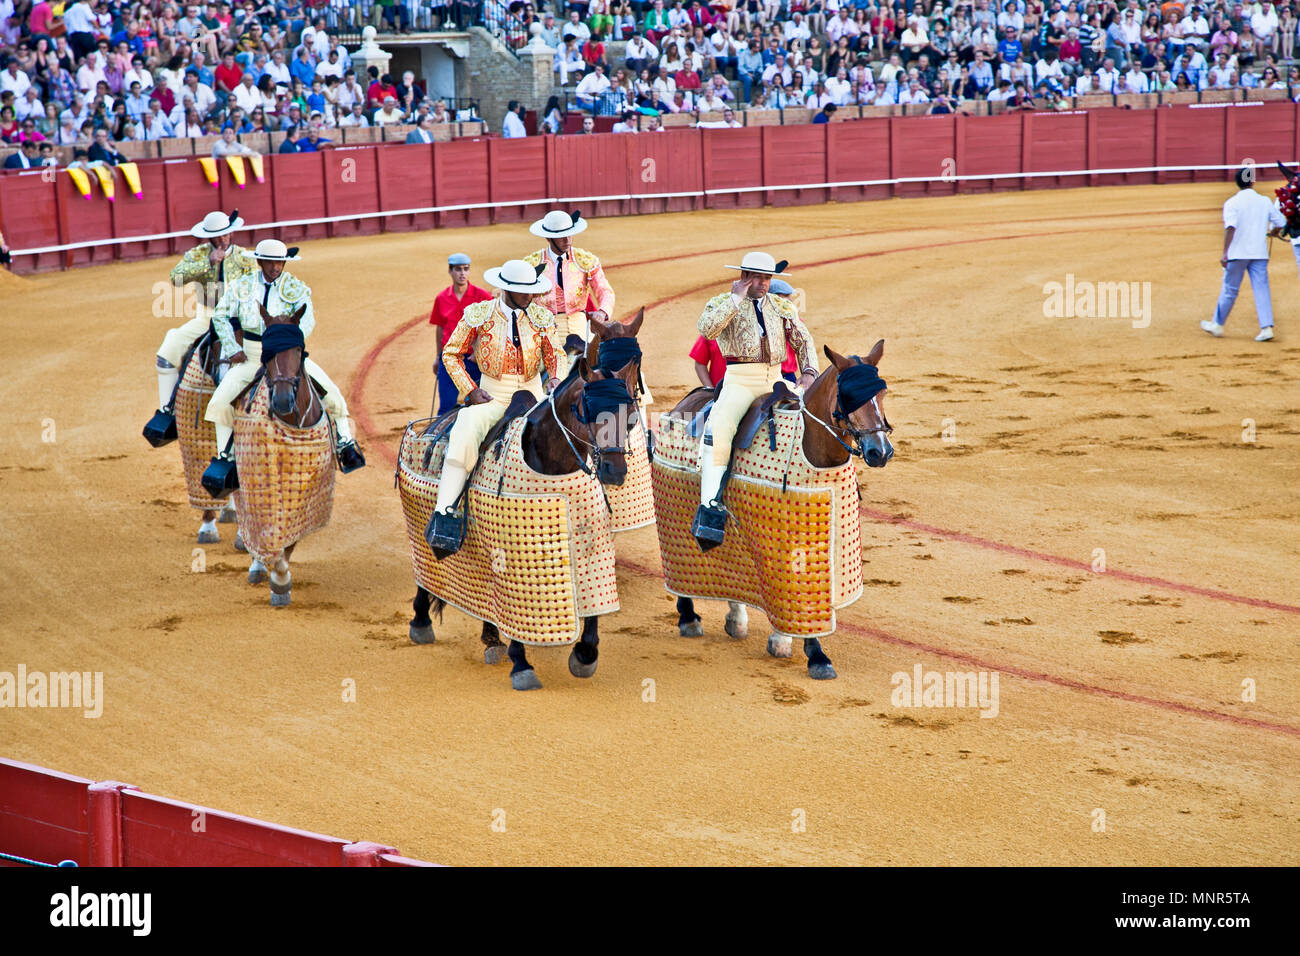 SEVILLE,SPAIN-SEP 11: Cuadrillas defile before a bullfight at Real Maestranza de Caballeria, Sep 11, 2011,Seville, Spain.Royal Cavalry of Seville is I - Stock Image